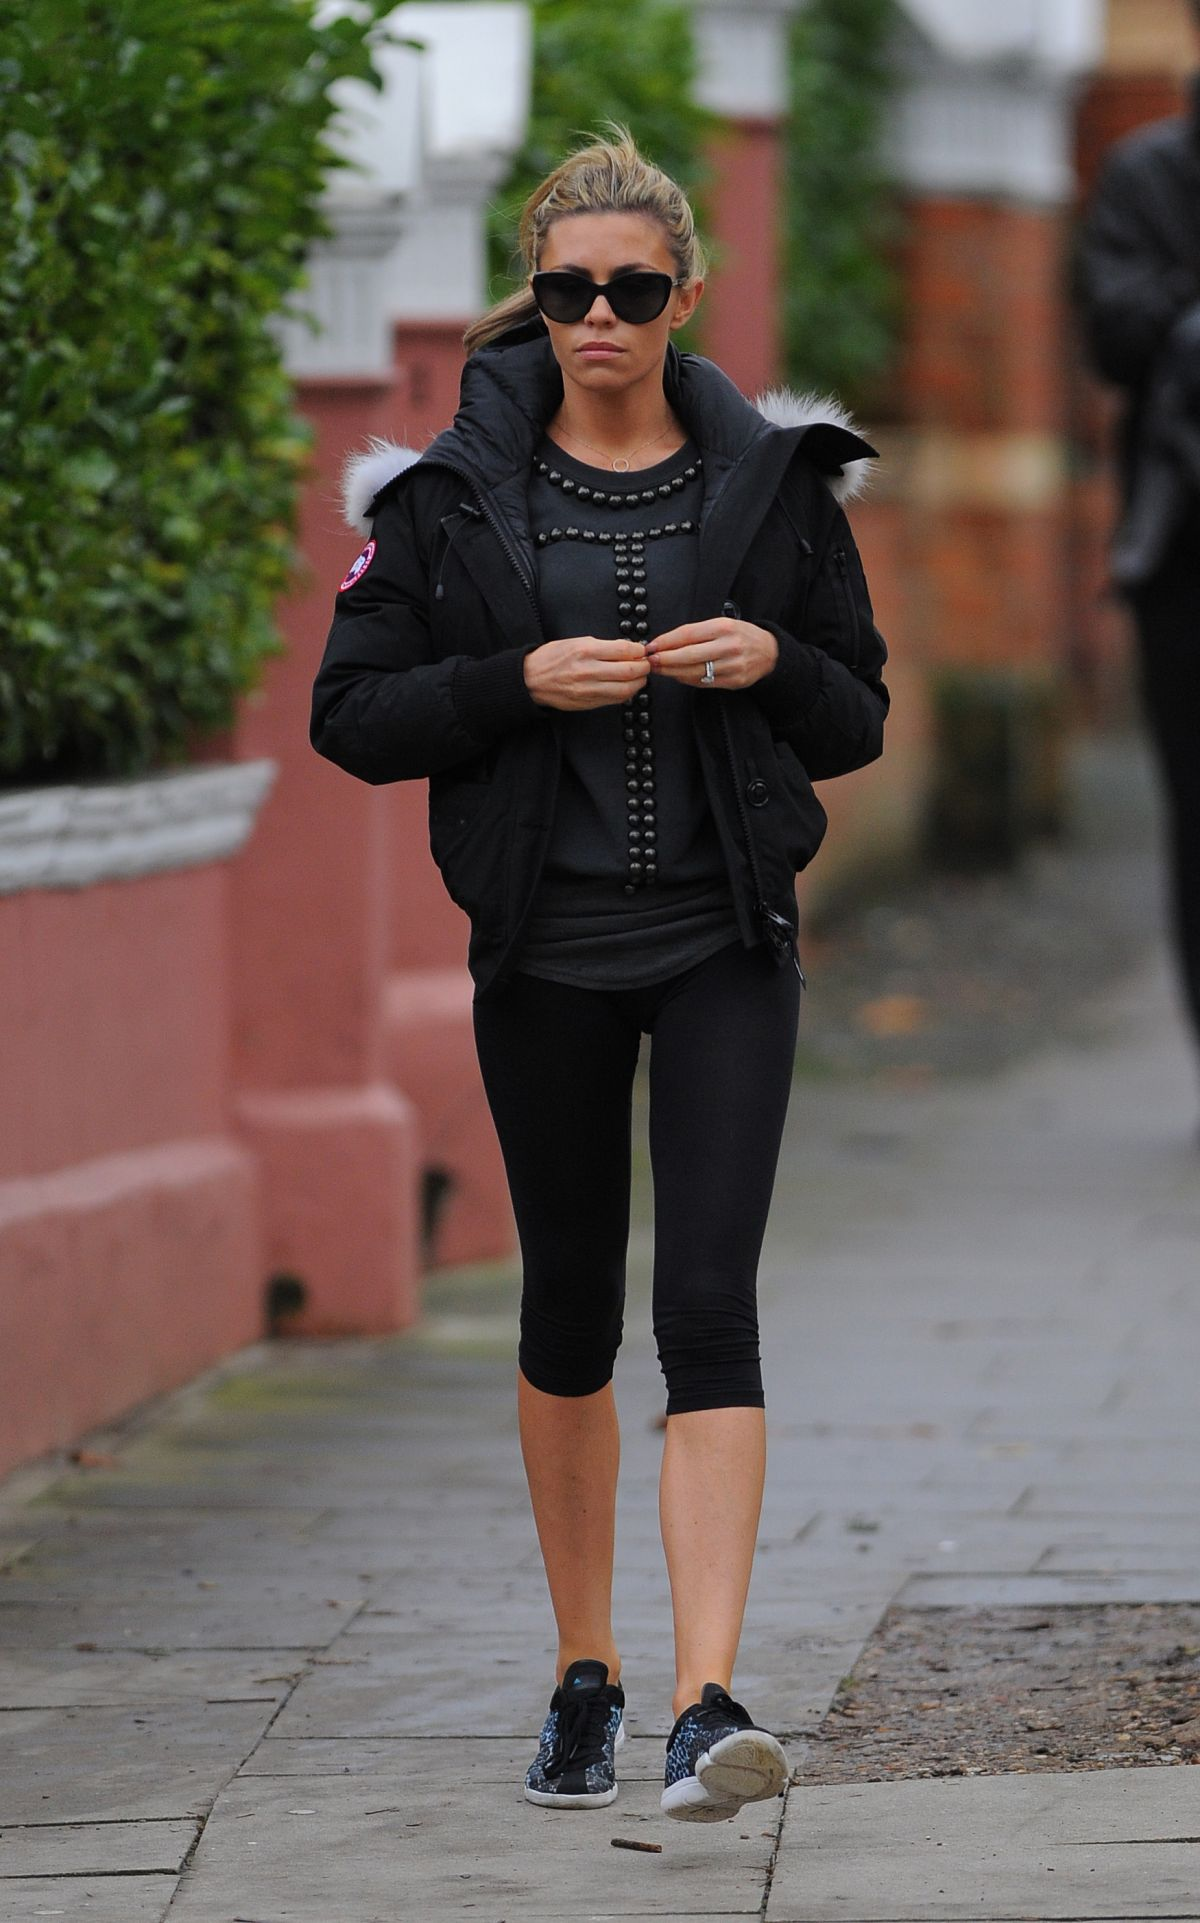 ABIGAIL ABBEY CLANCY in Leggings Out and About  in London